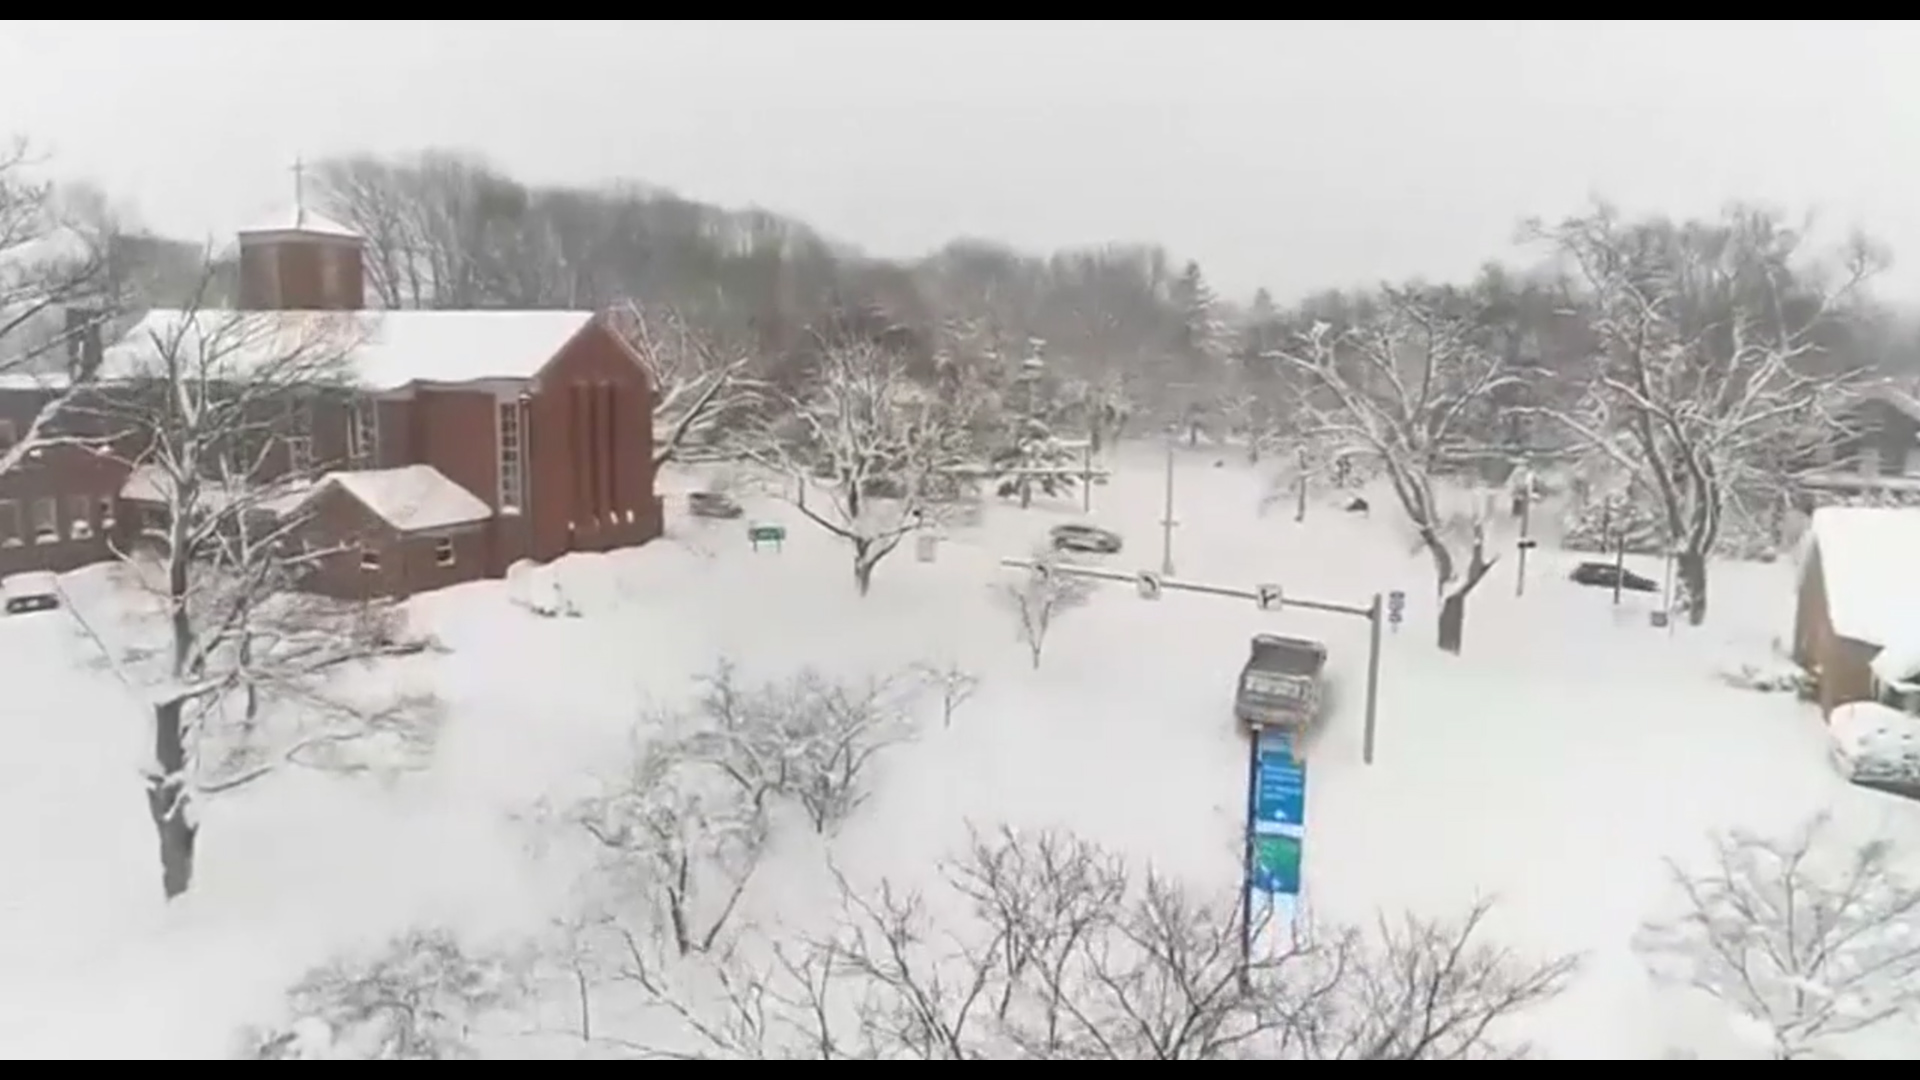 More snow coming to Erie, Pa. after record-breaking Christmas ...